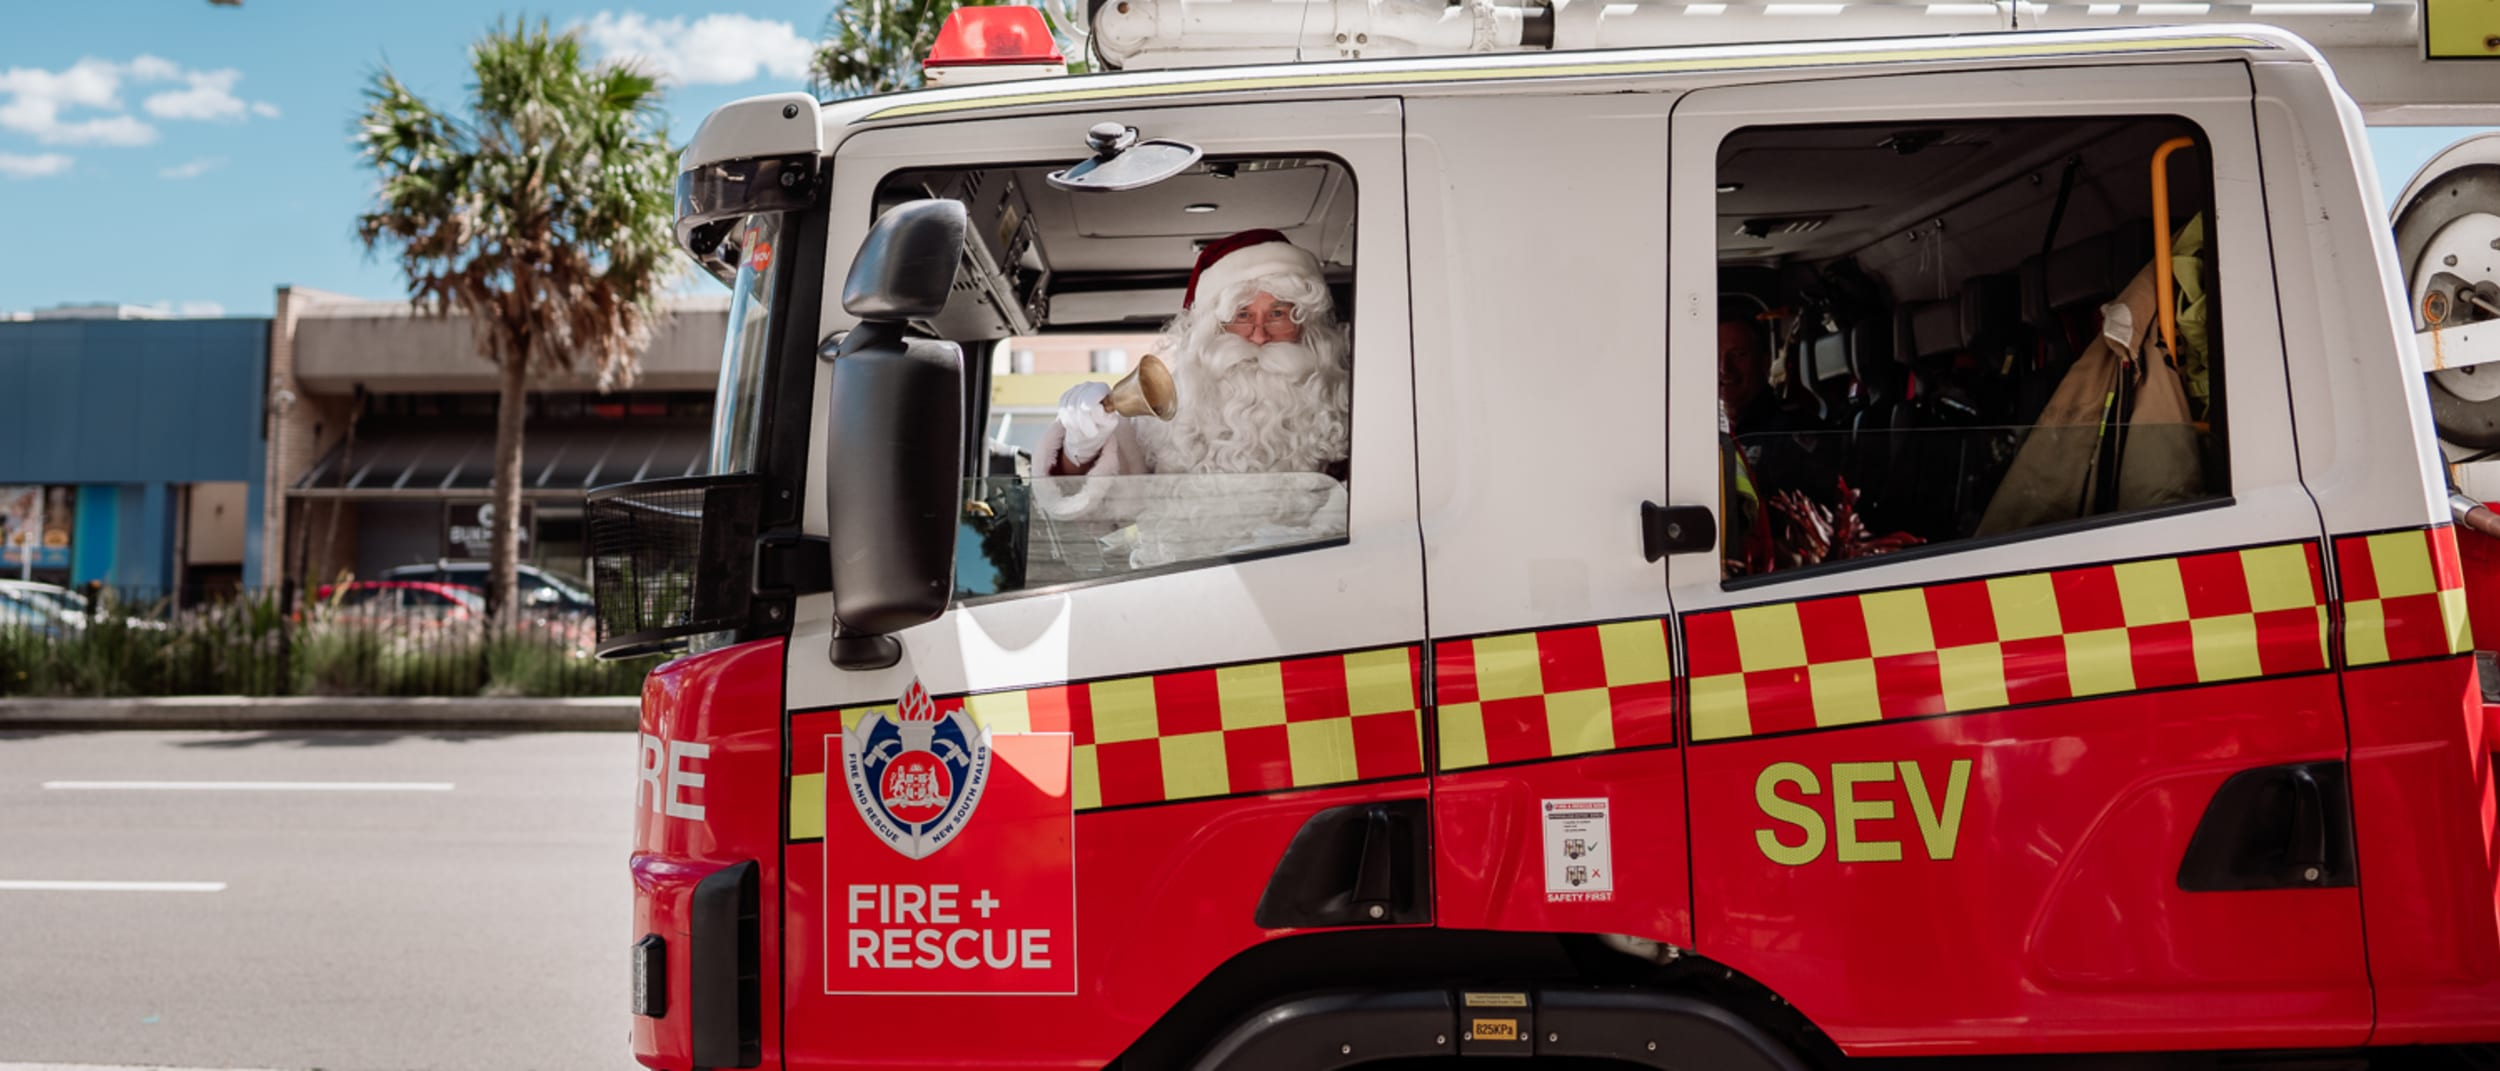 Santa has arrived (with bells on) at Westfield Miranda!